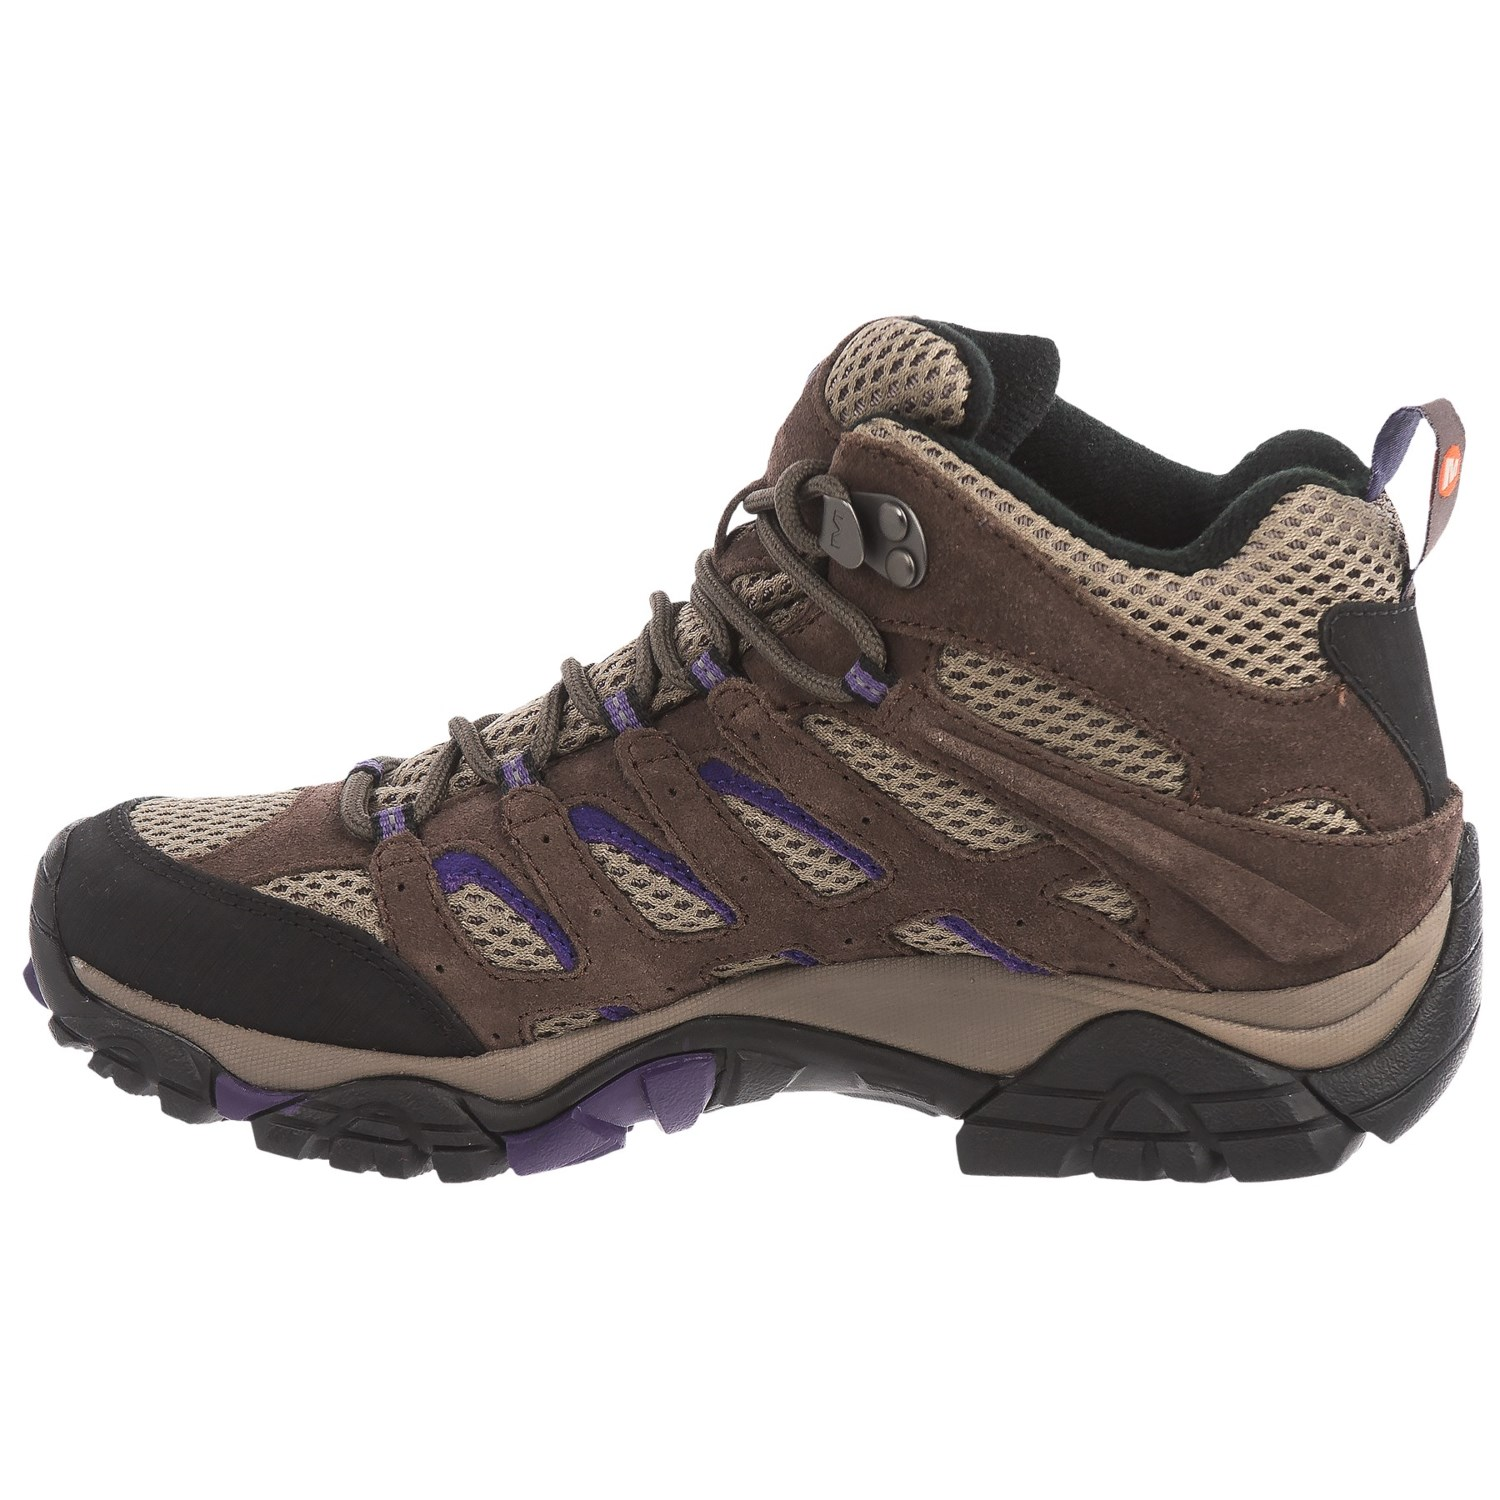 Merrell Moab Ventilator Mid Hiking Boots For Women